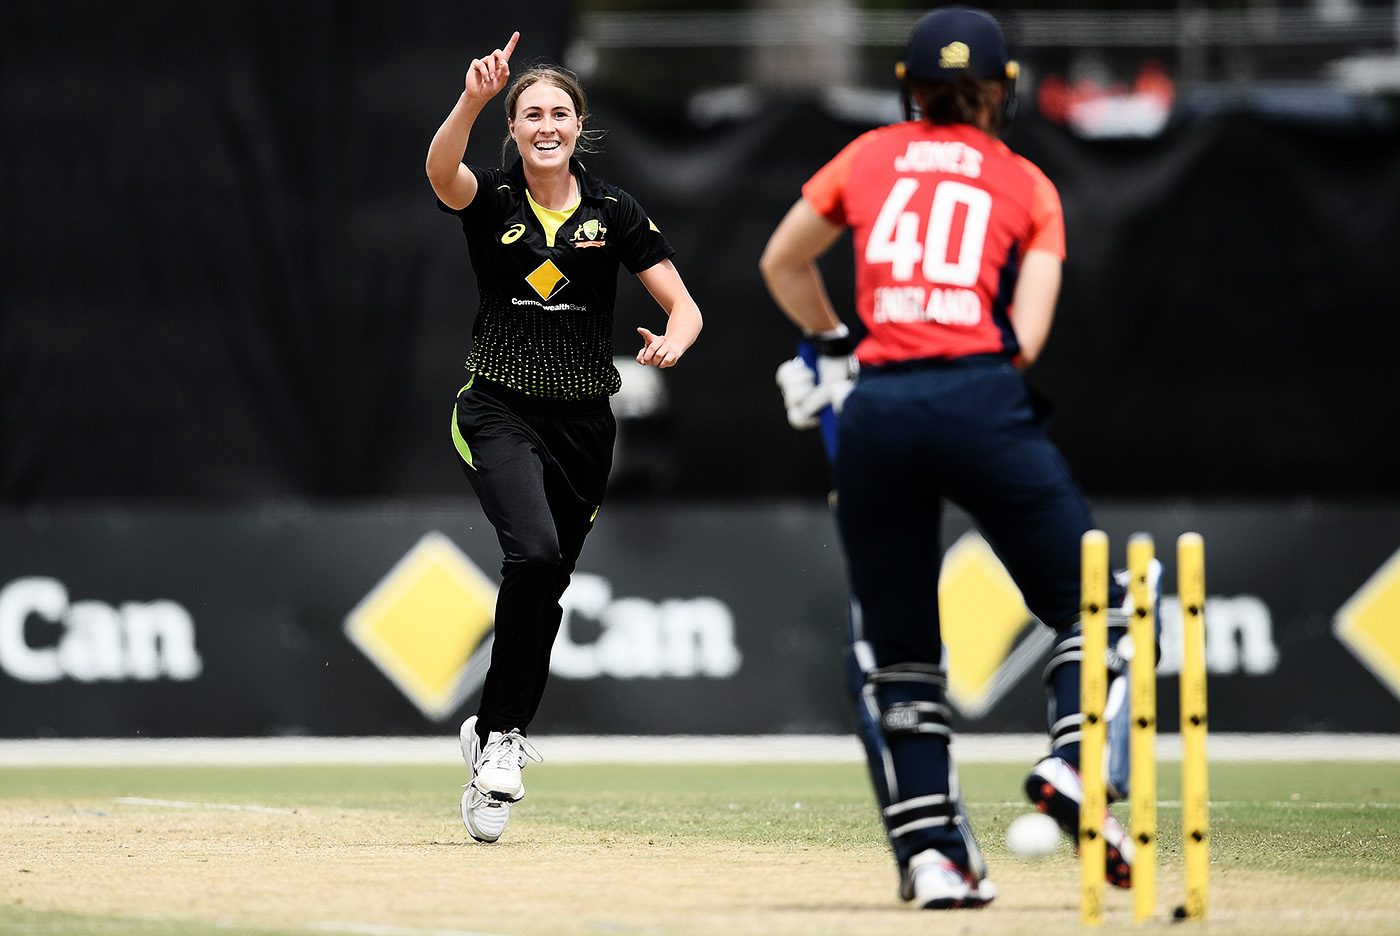 Twenty-one-year-old Tayla Vlaeminck, who has broken bats while bowling during training, has impressed Lanning with her pace